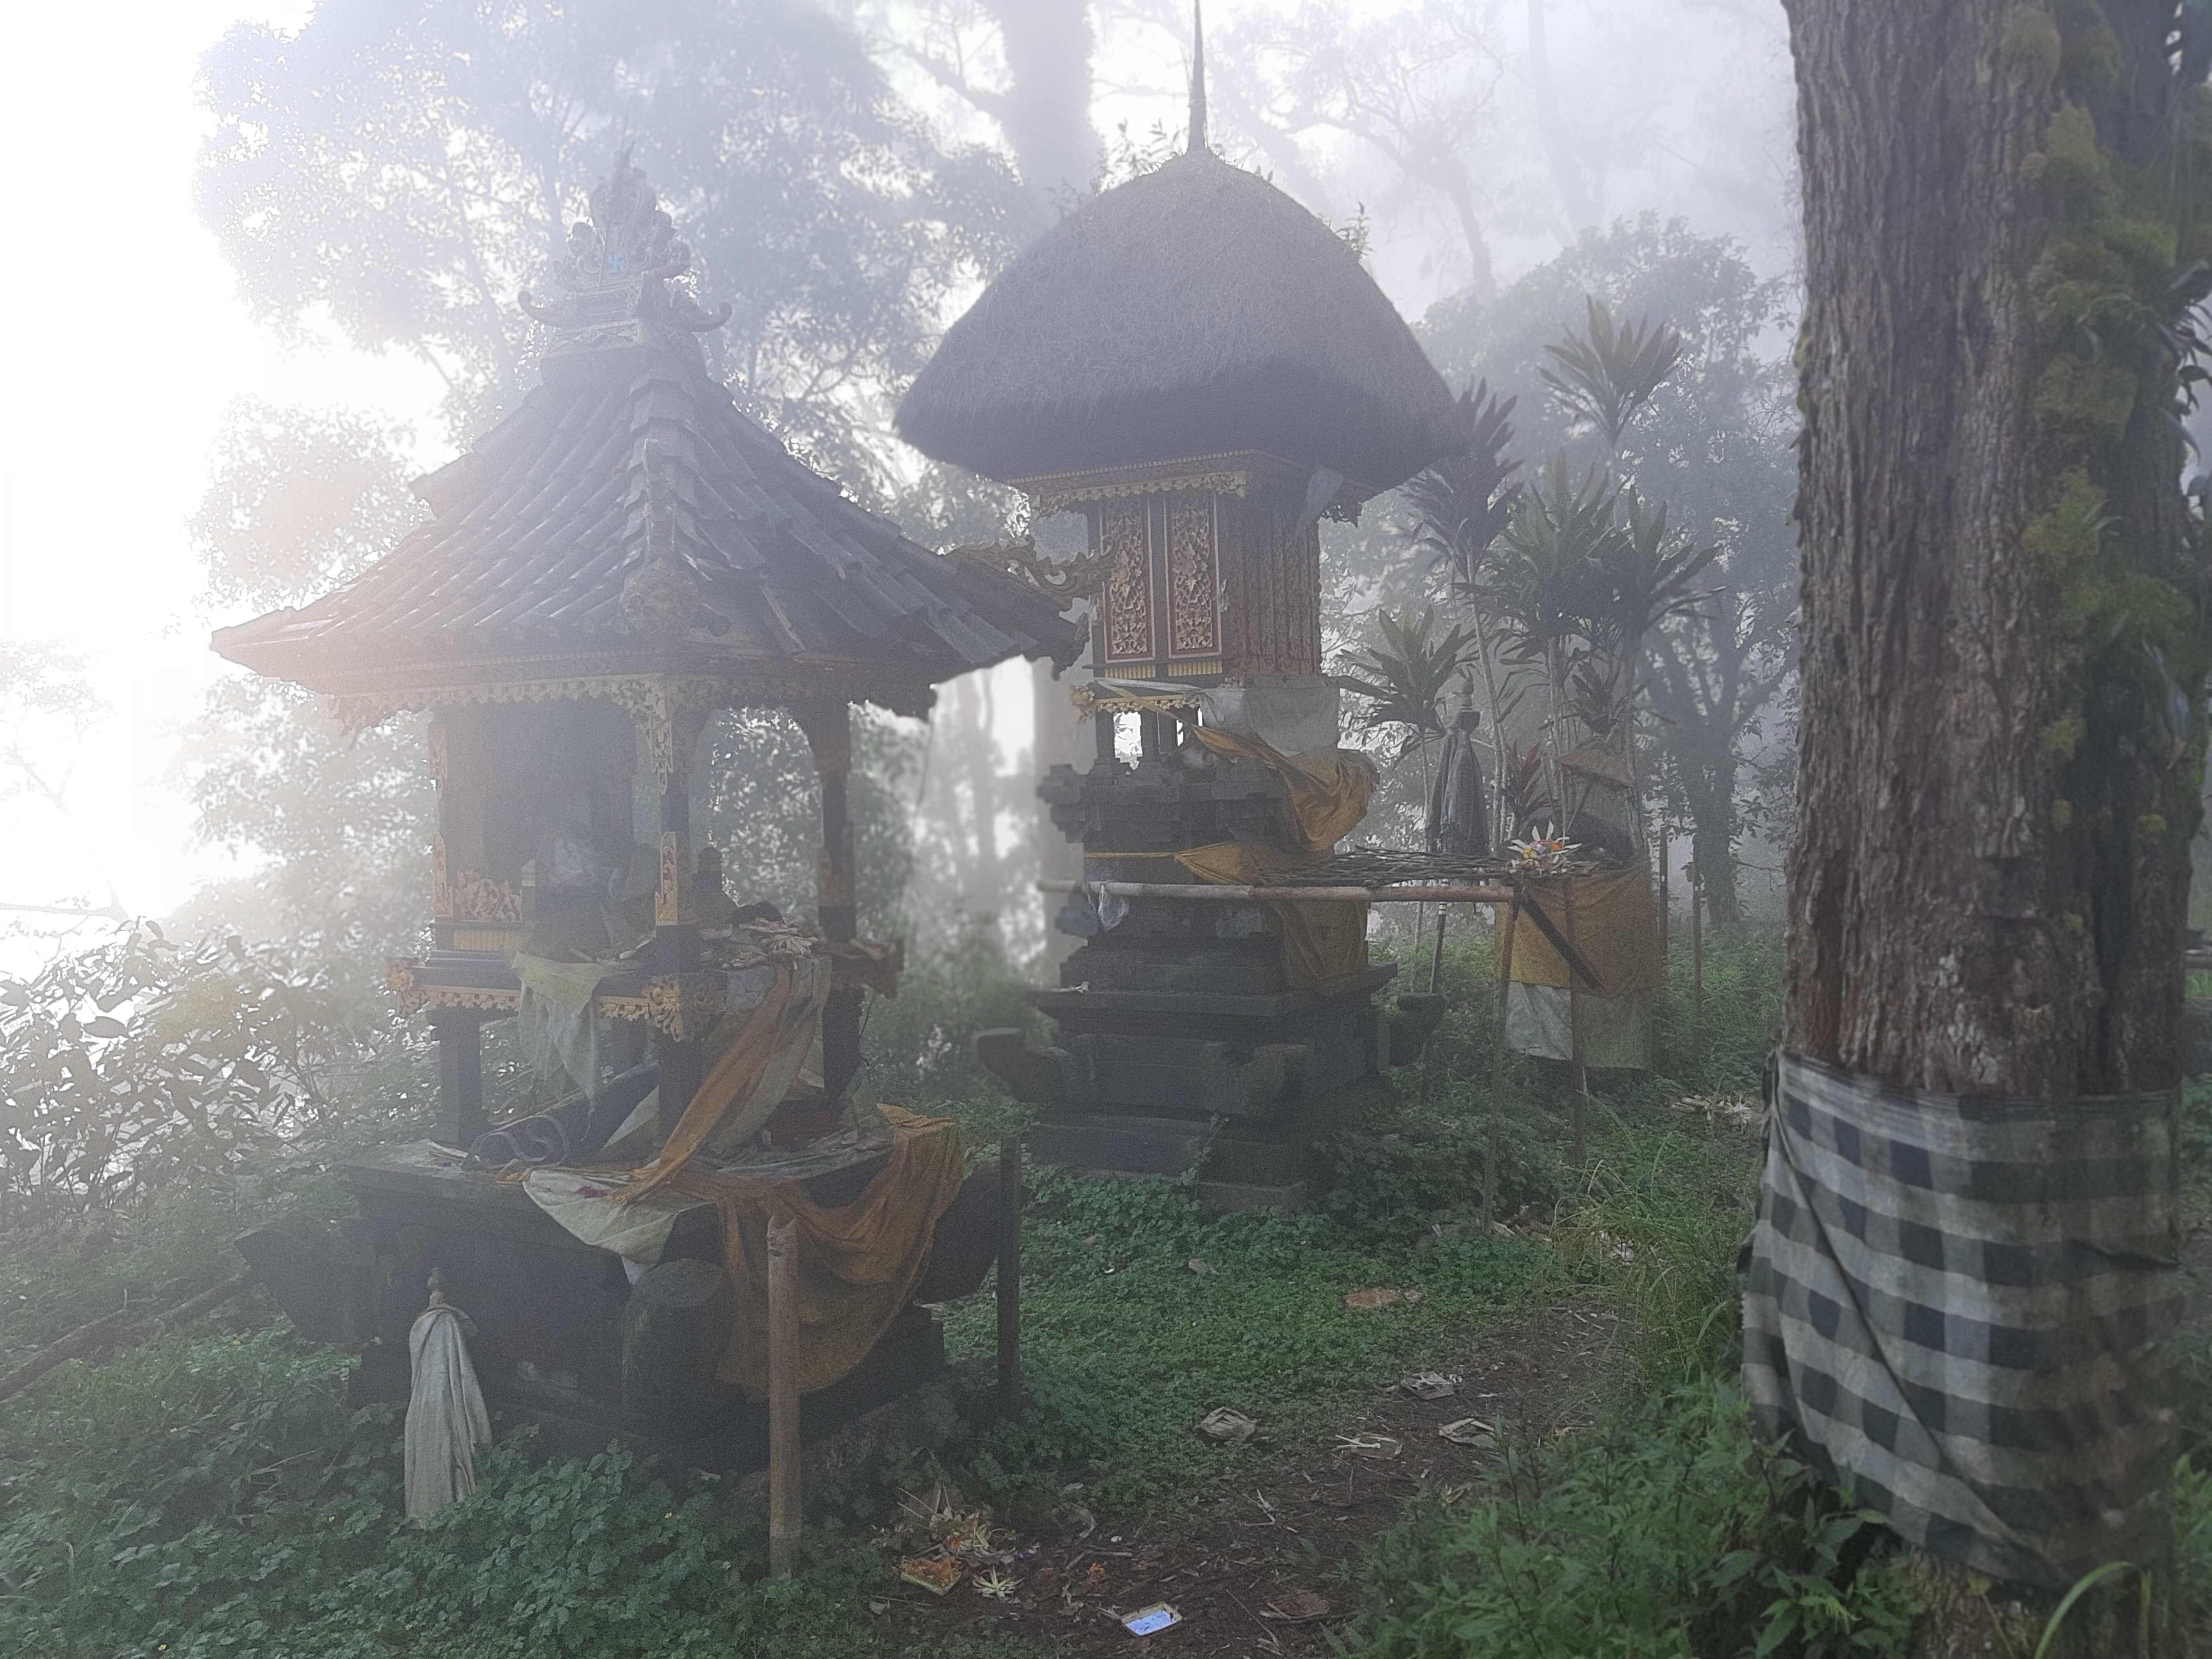 One of the temple shrines that we stopped at.